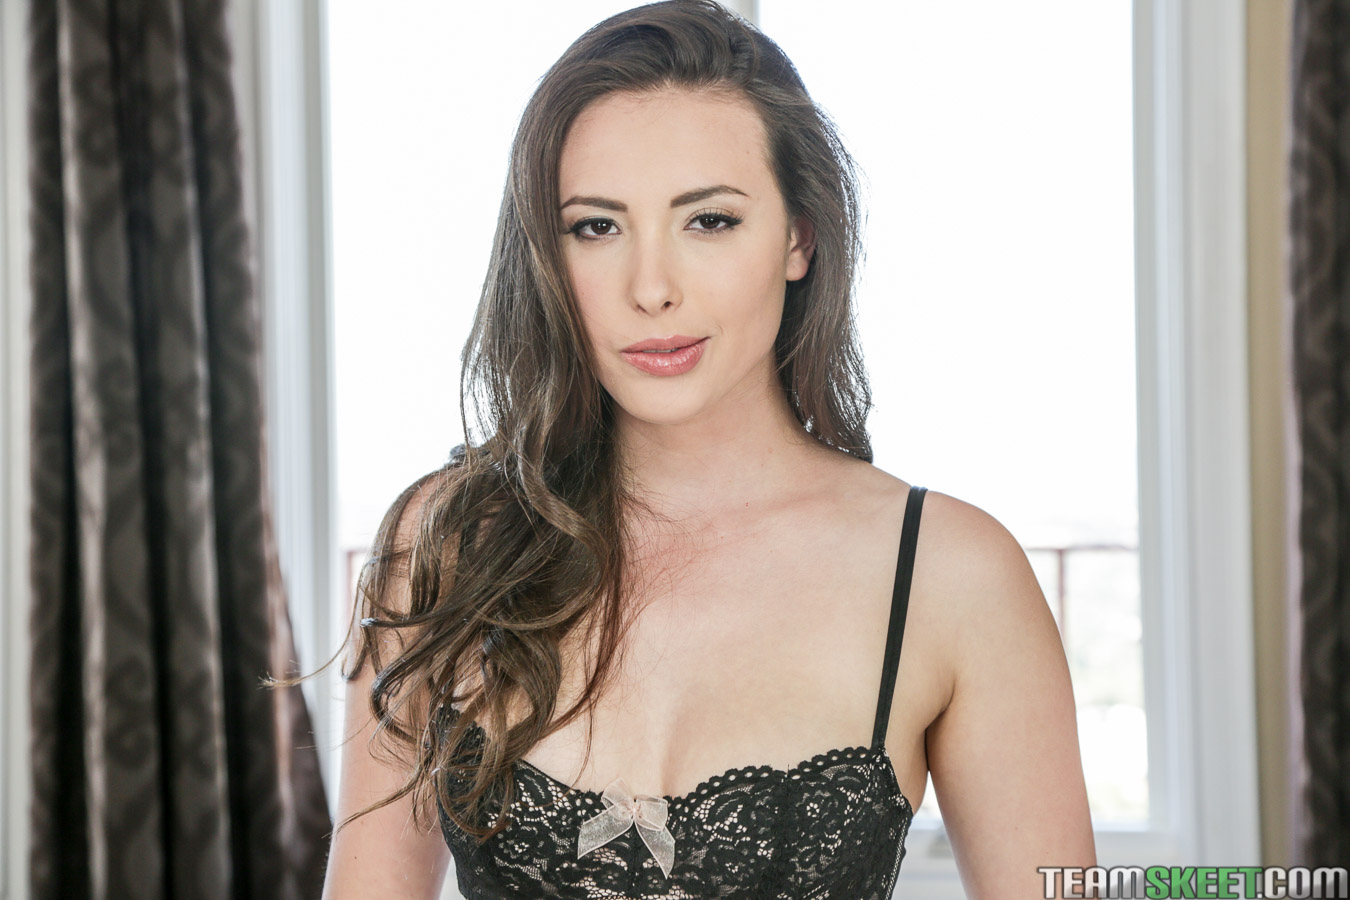 calvert sex personals Watch or download movie casey calvert enjoys anal sex at hard porn tube my movie cinema for iphone/ipad or android.